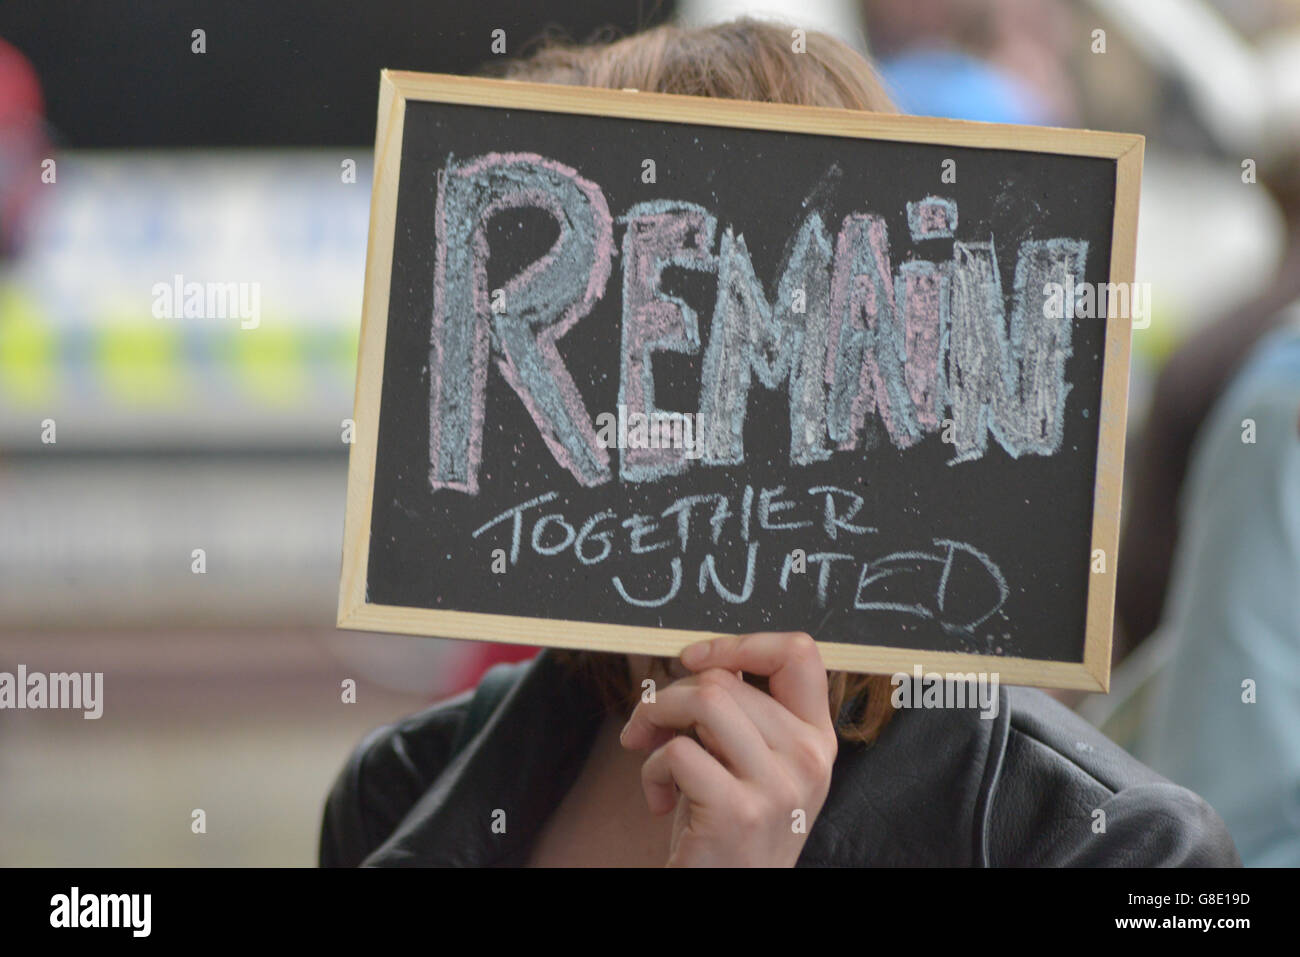 Manchester, UK. 28th June, 2016. A person demonstrating to have the United Kingdom's European Union membership referendum Stock Photo